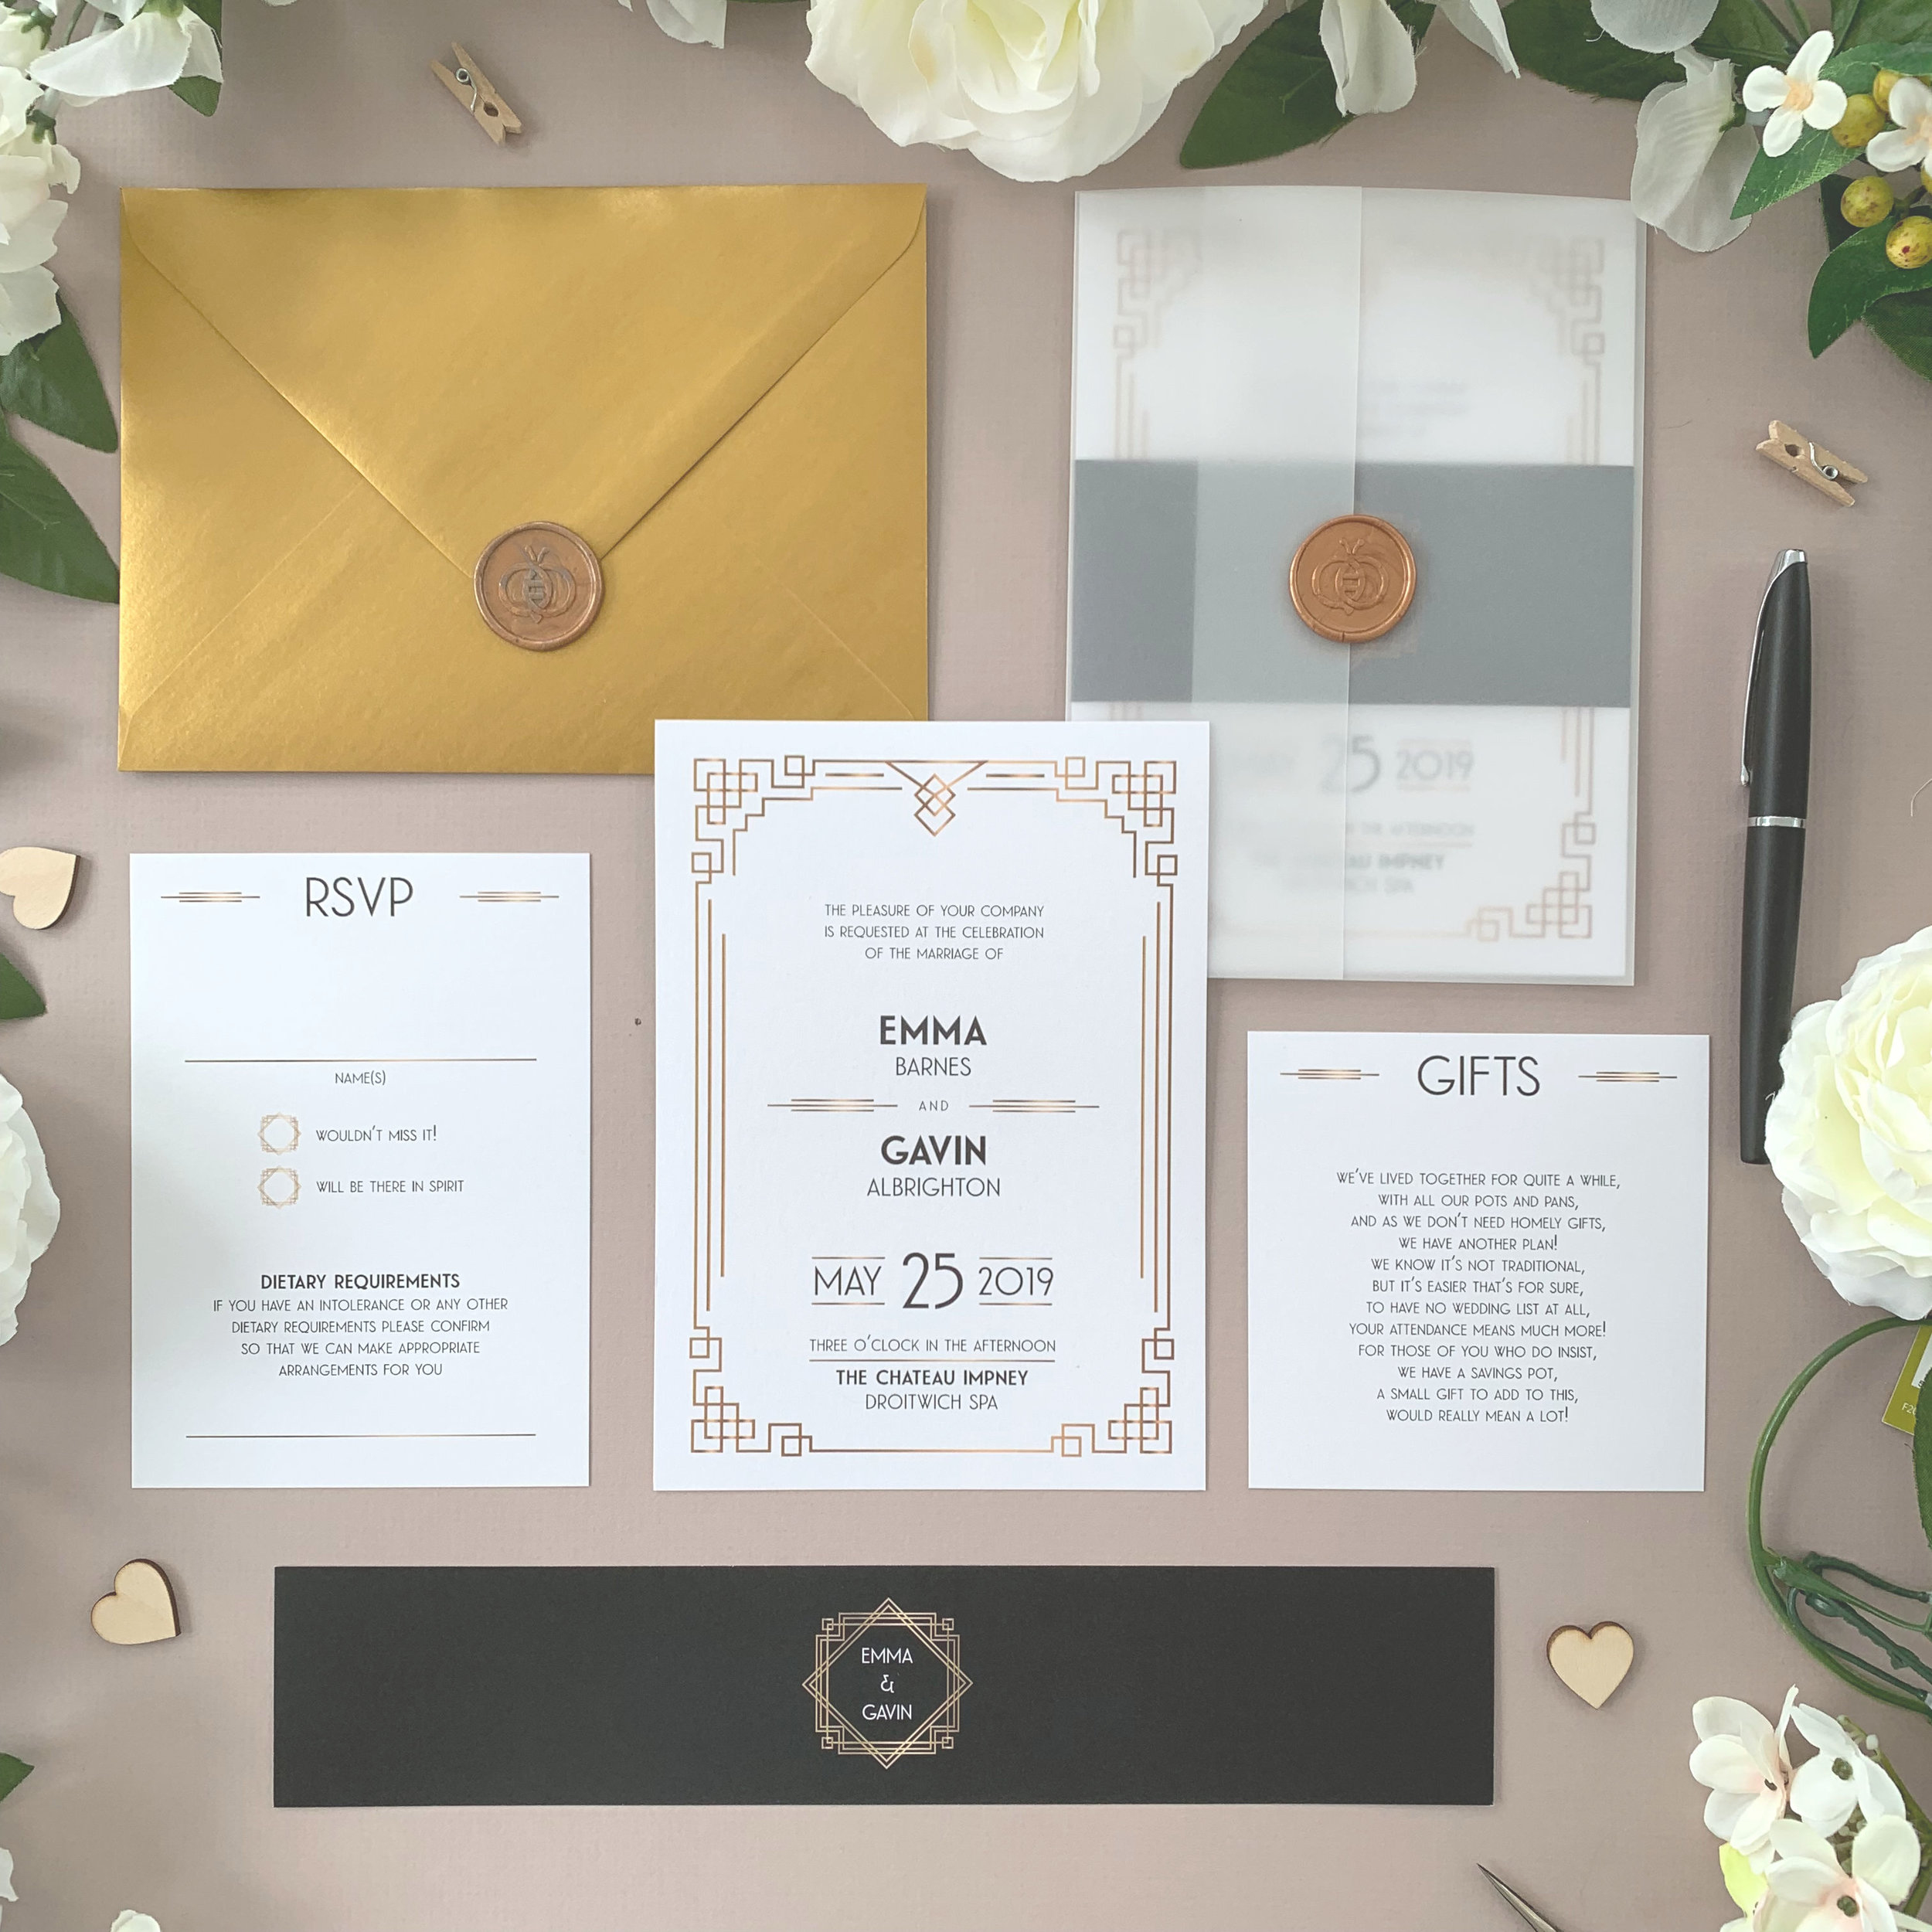 Earl's Court - Inspired by the glamorous 1920's, this Art Deco-inspired classic wedding invitation suite evokes the Gatsby era with classical typography and artwork, befitting a glitzy wedding day.The classic invitation suite is our most popular configuration and hugely versatile. If you don't have much to say or want to keep things simple you can even just order the invitation card on its own, which is an ideal option for evening guests.Most couples opt for a suite of items for day guests which can then be bound, with a choice of a paper belly band, vellum jacket, sticker or wax seal to keep multiple cards beautifully neat and together.Coloured envelopes are available, in addition to printing of guest names and envelopes to make the process even easier.